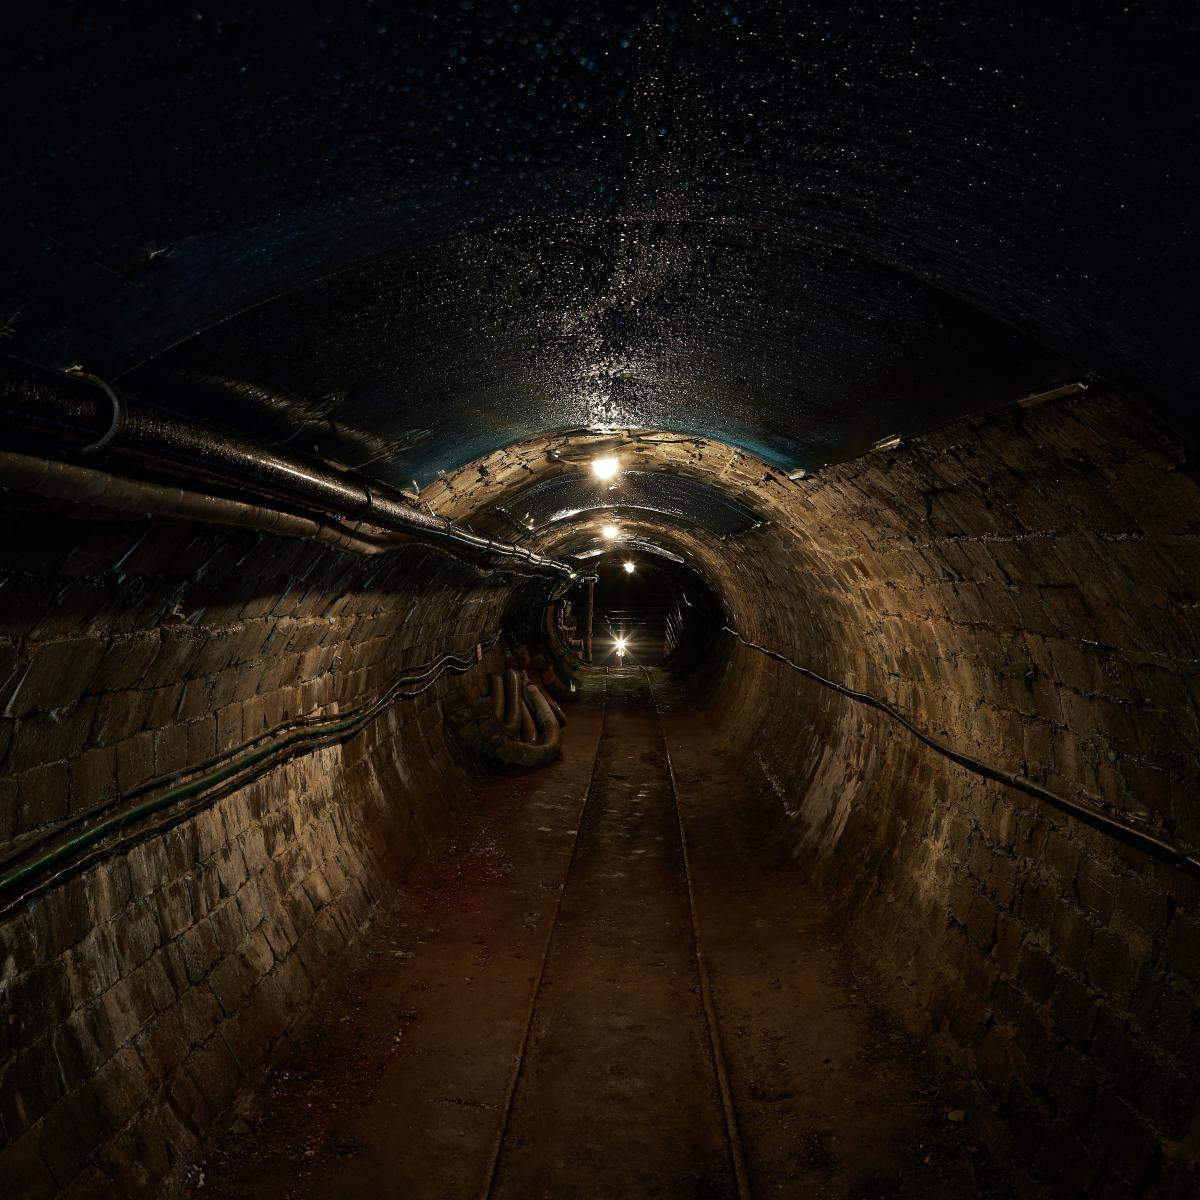 An underground, dark, tunnel